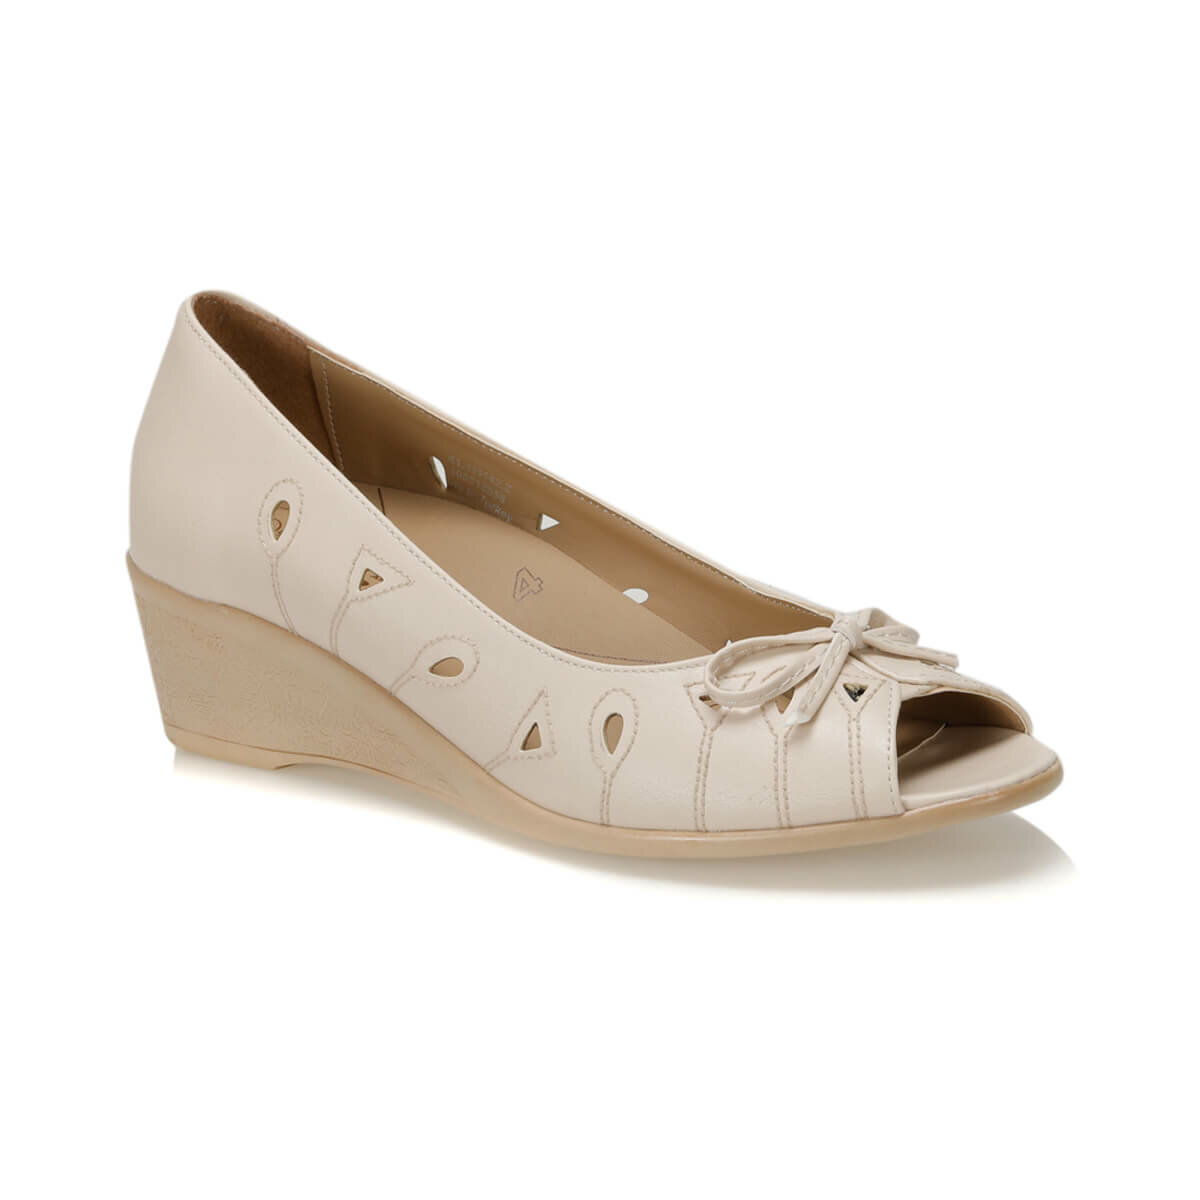 FLO 81. 111142.Z Beige Women 'S Shoes Polaris 5 Point